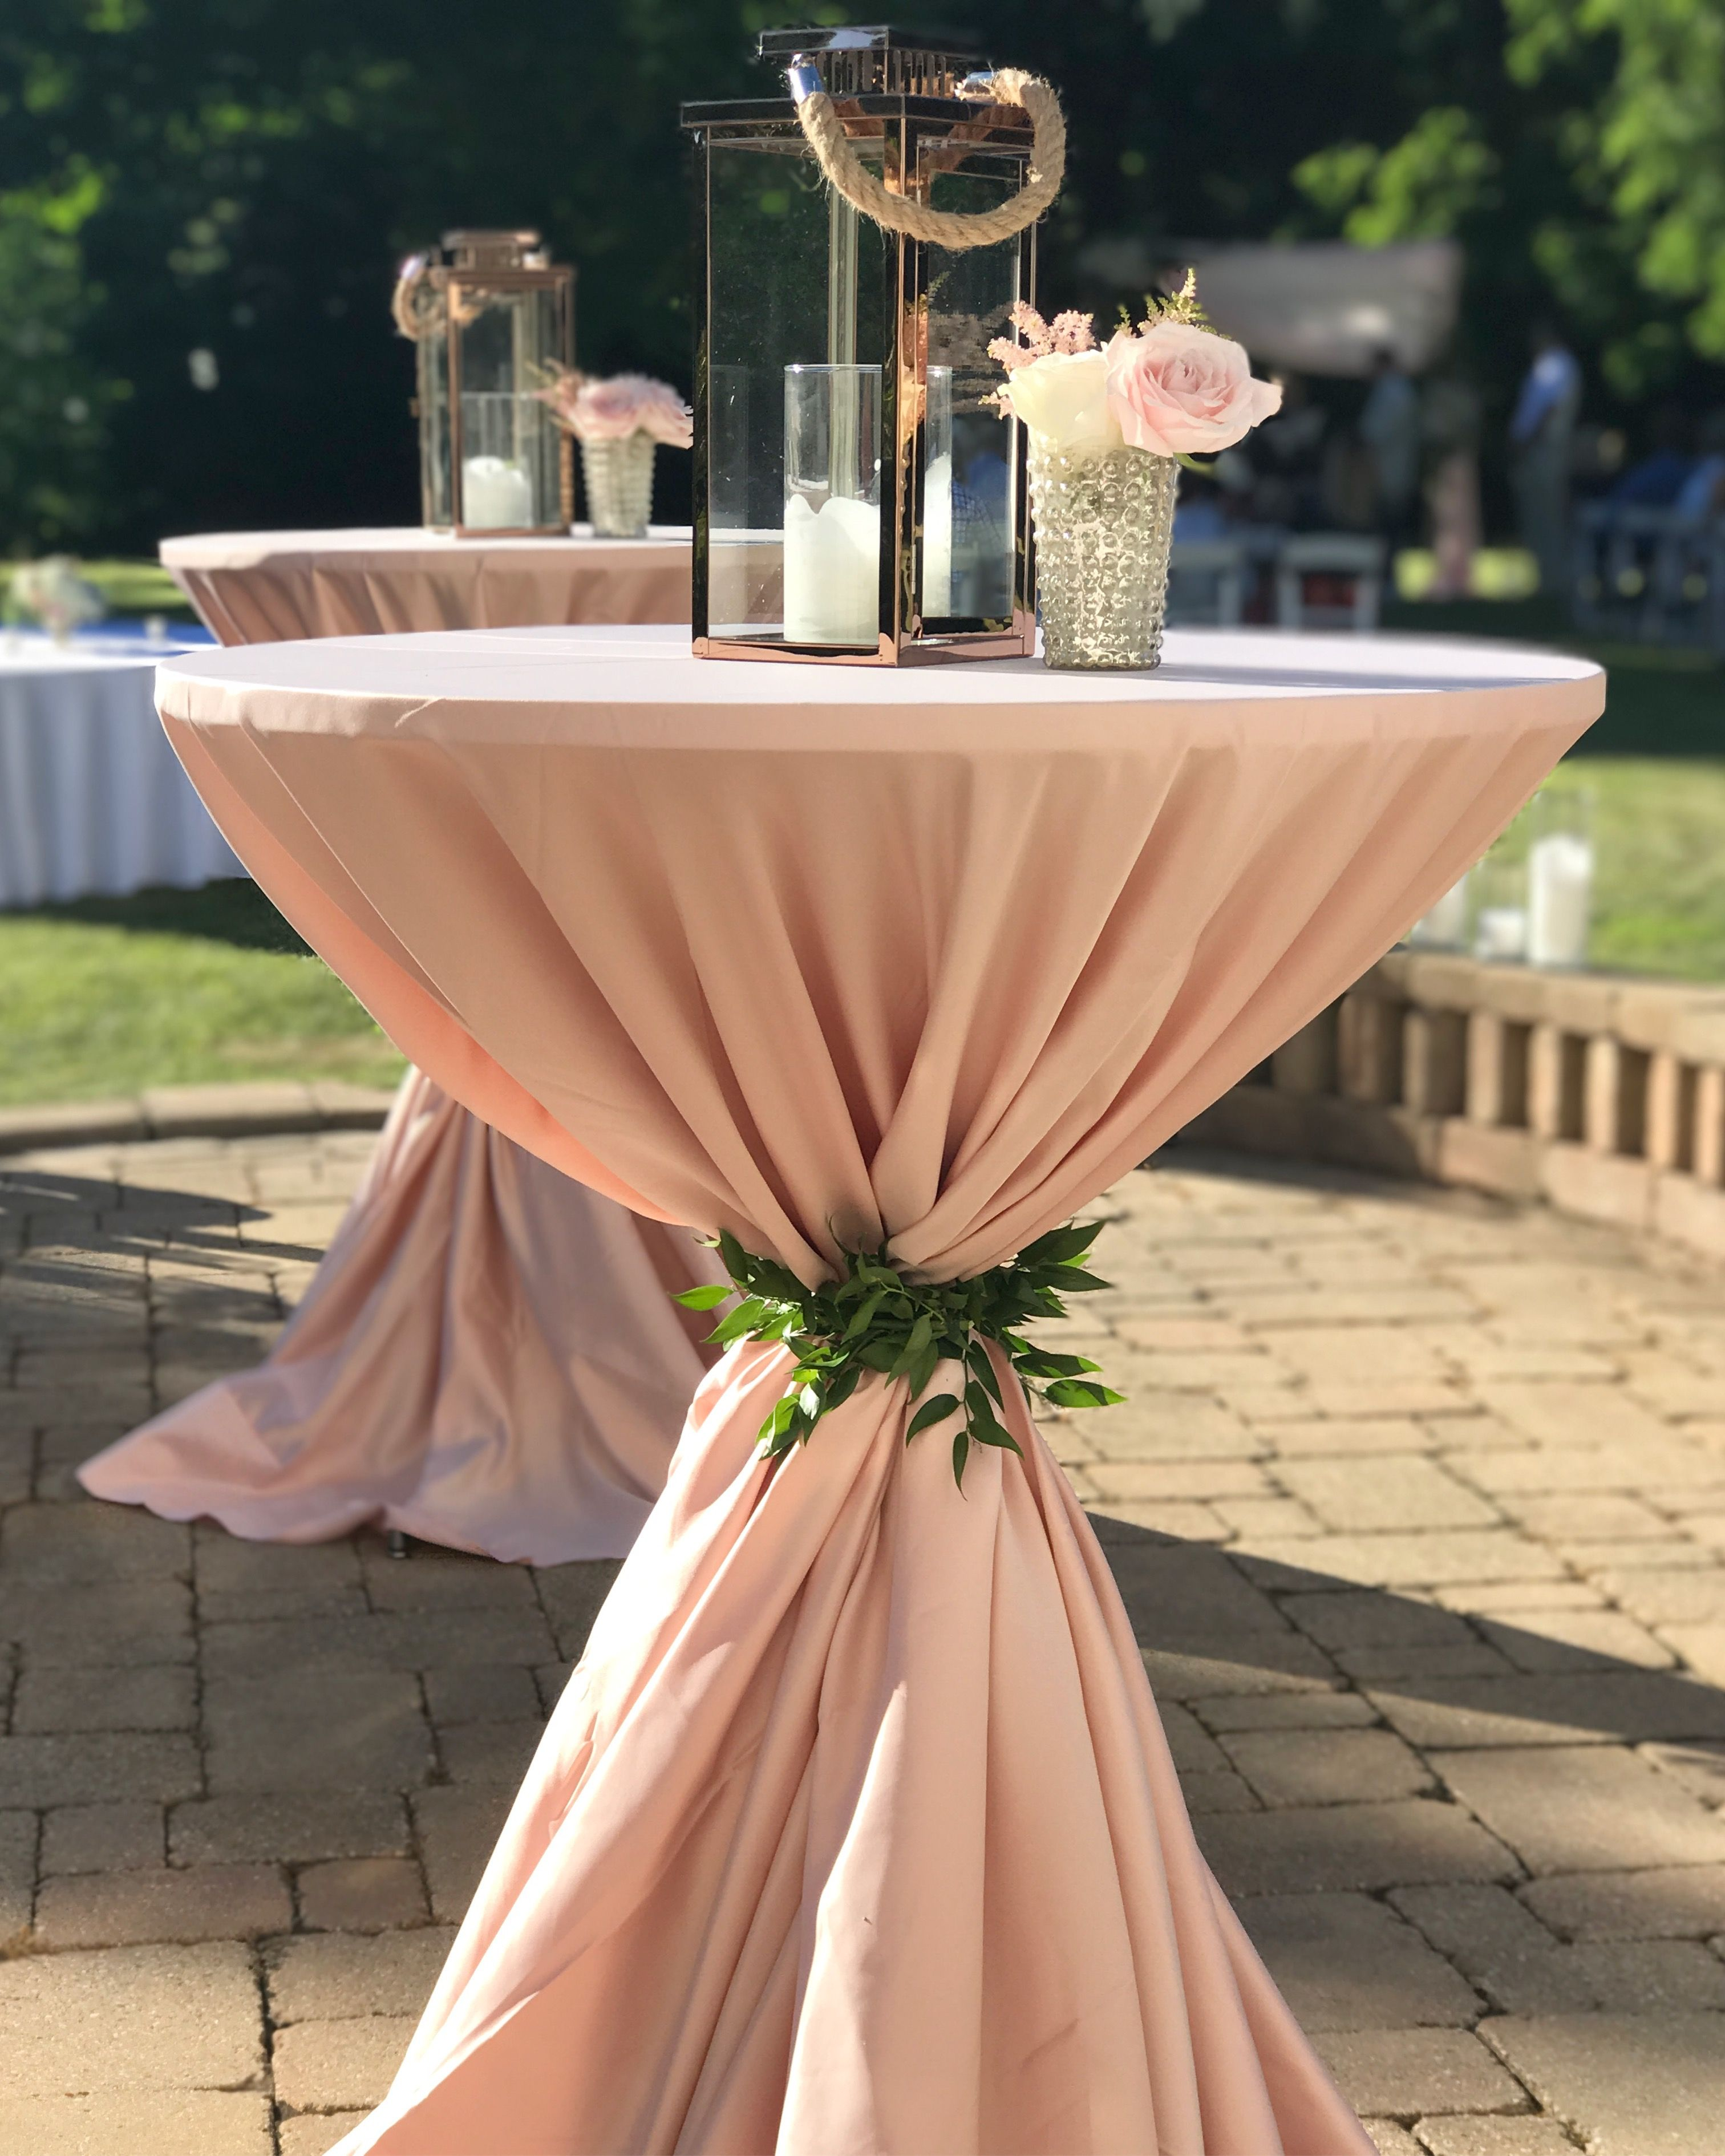 Vintage Outdoor Wedding Ideas: Blush Pink Cocktail Table For Outdoor Wedding